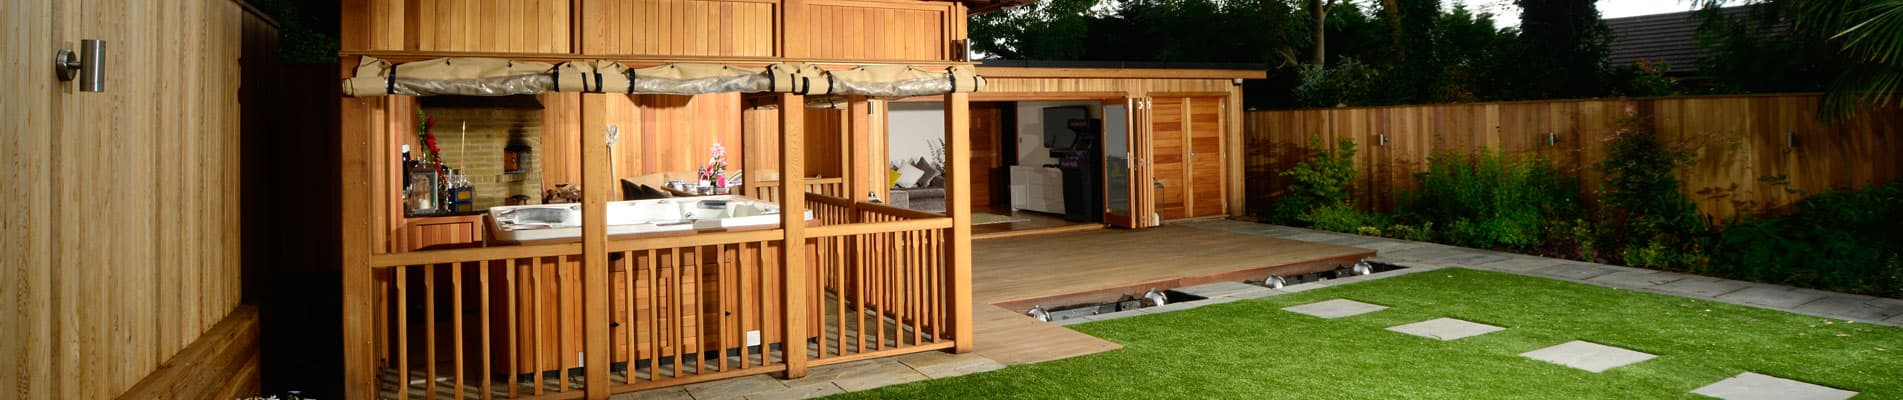 Bespoke Garden Rooms